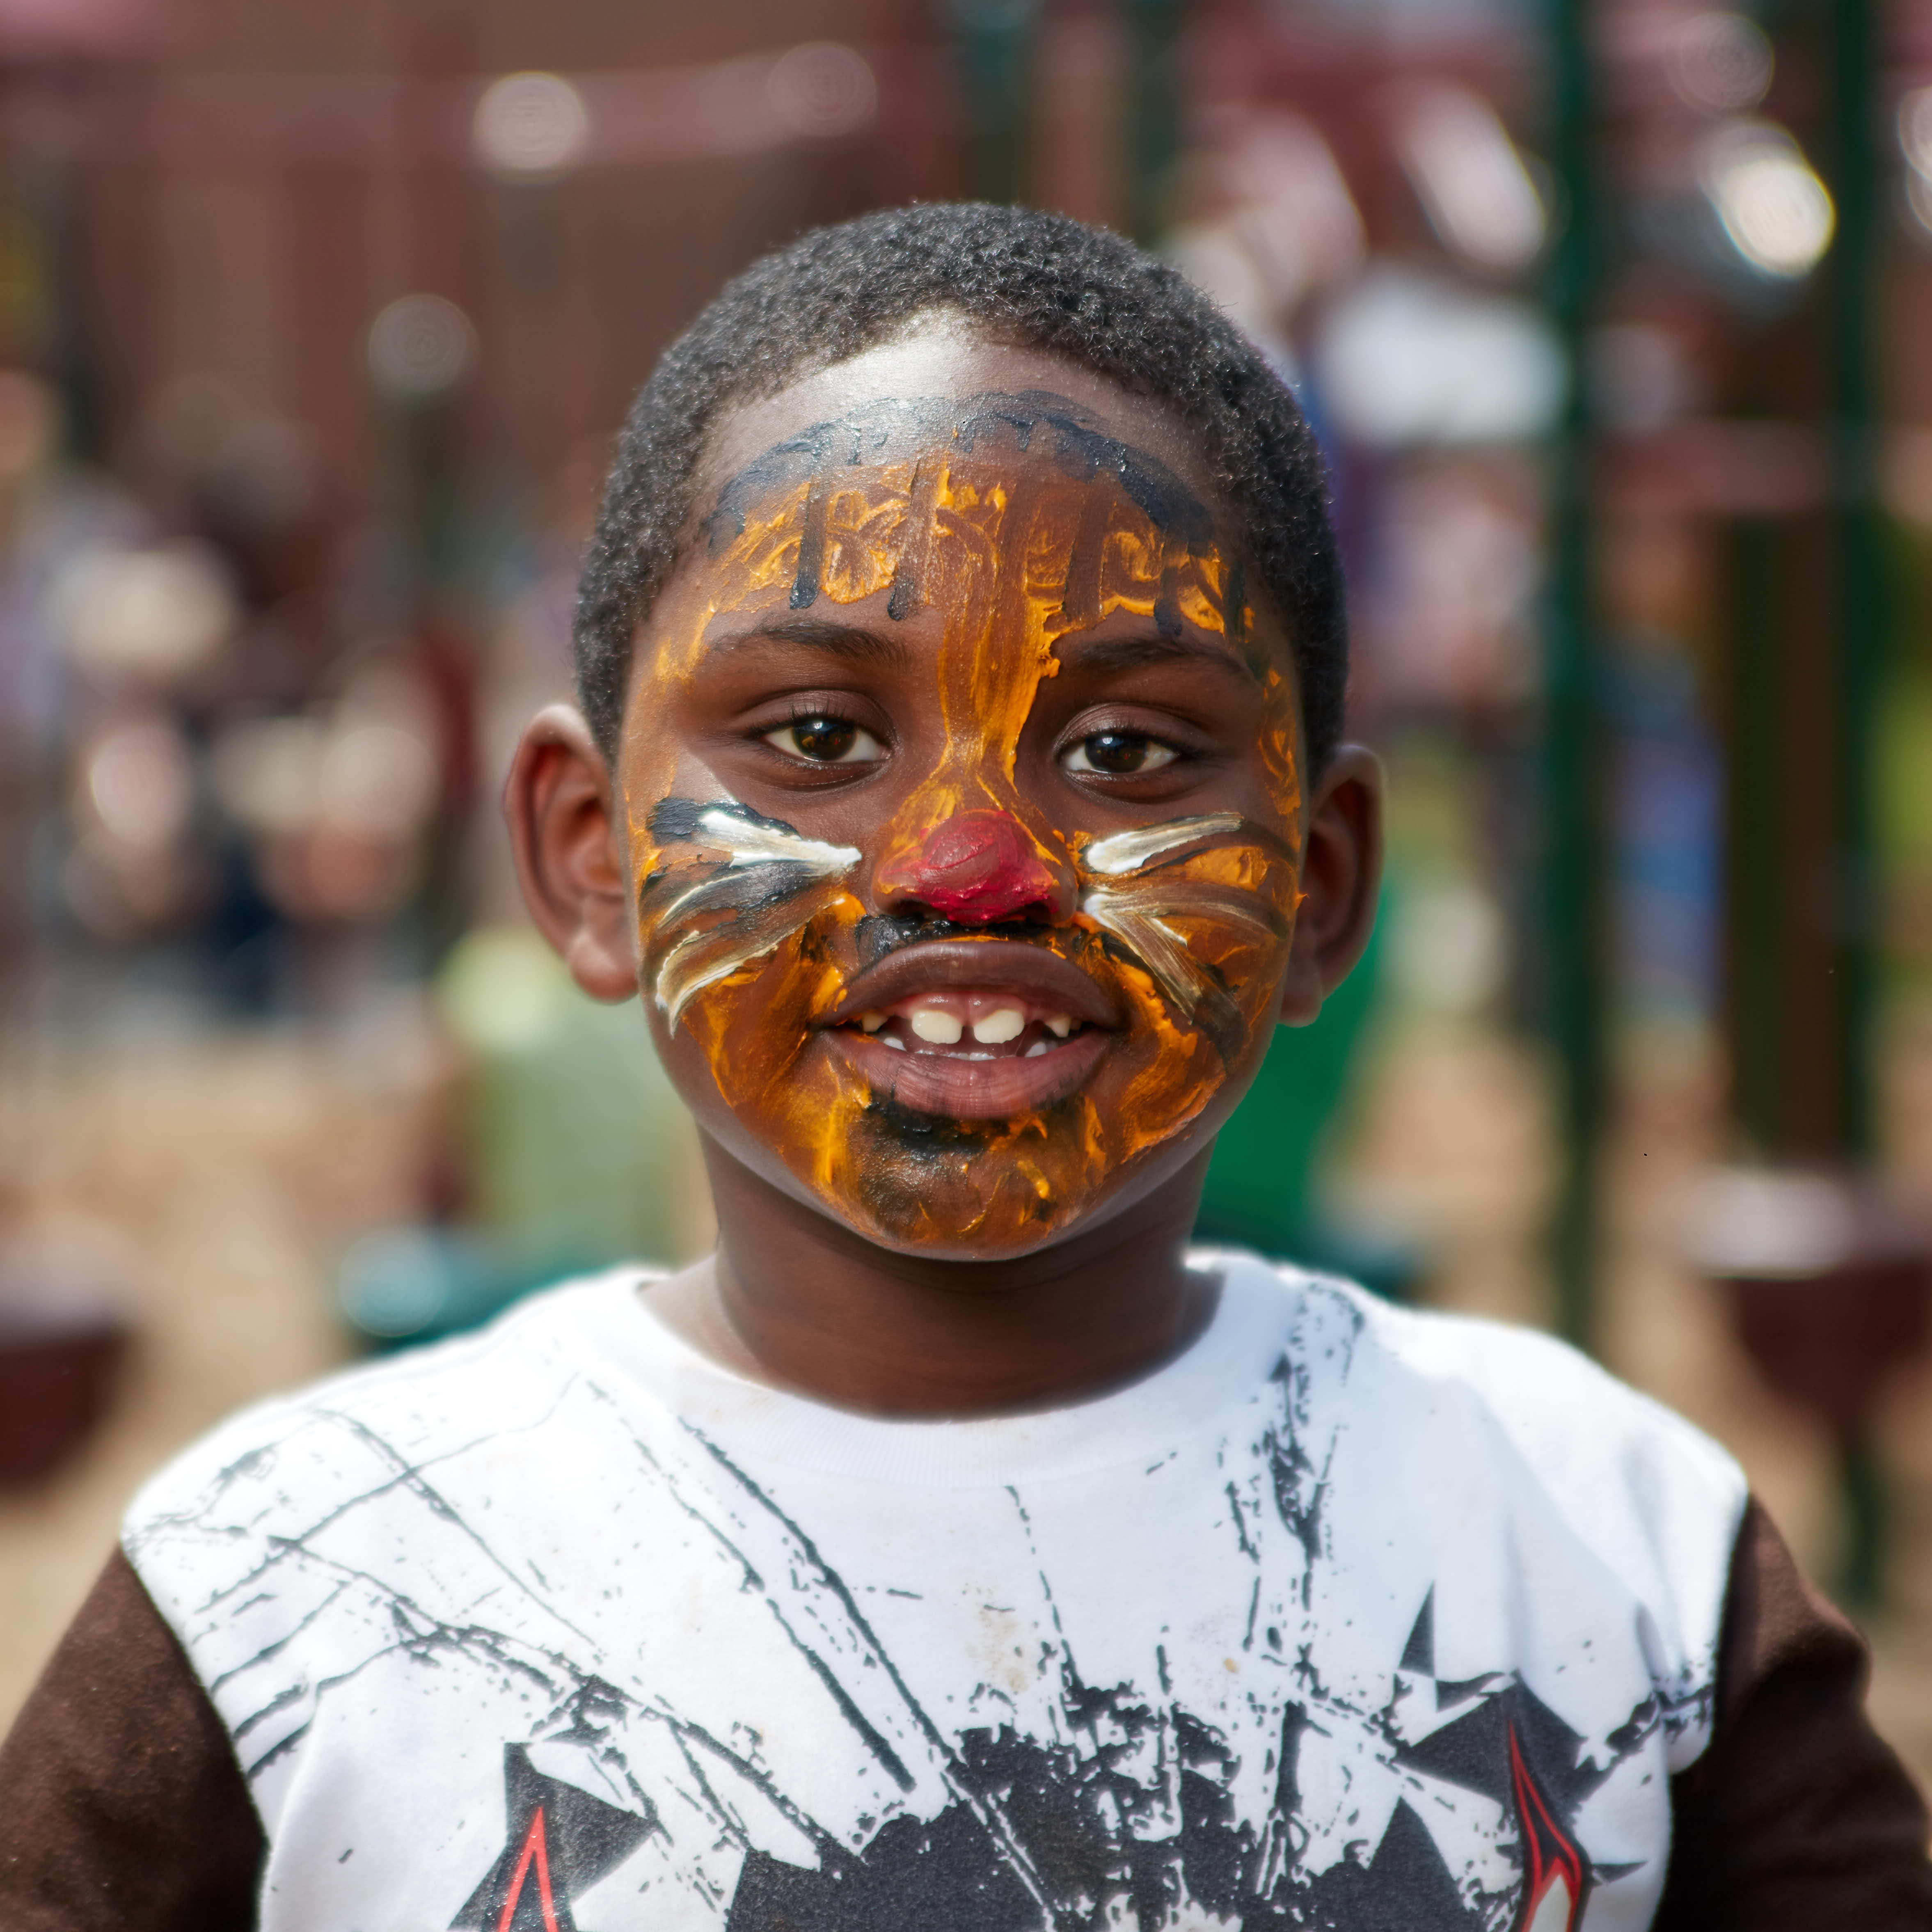 Young boy with his face painted